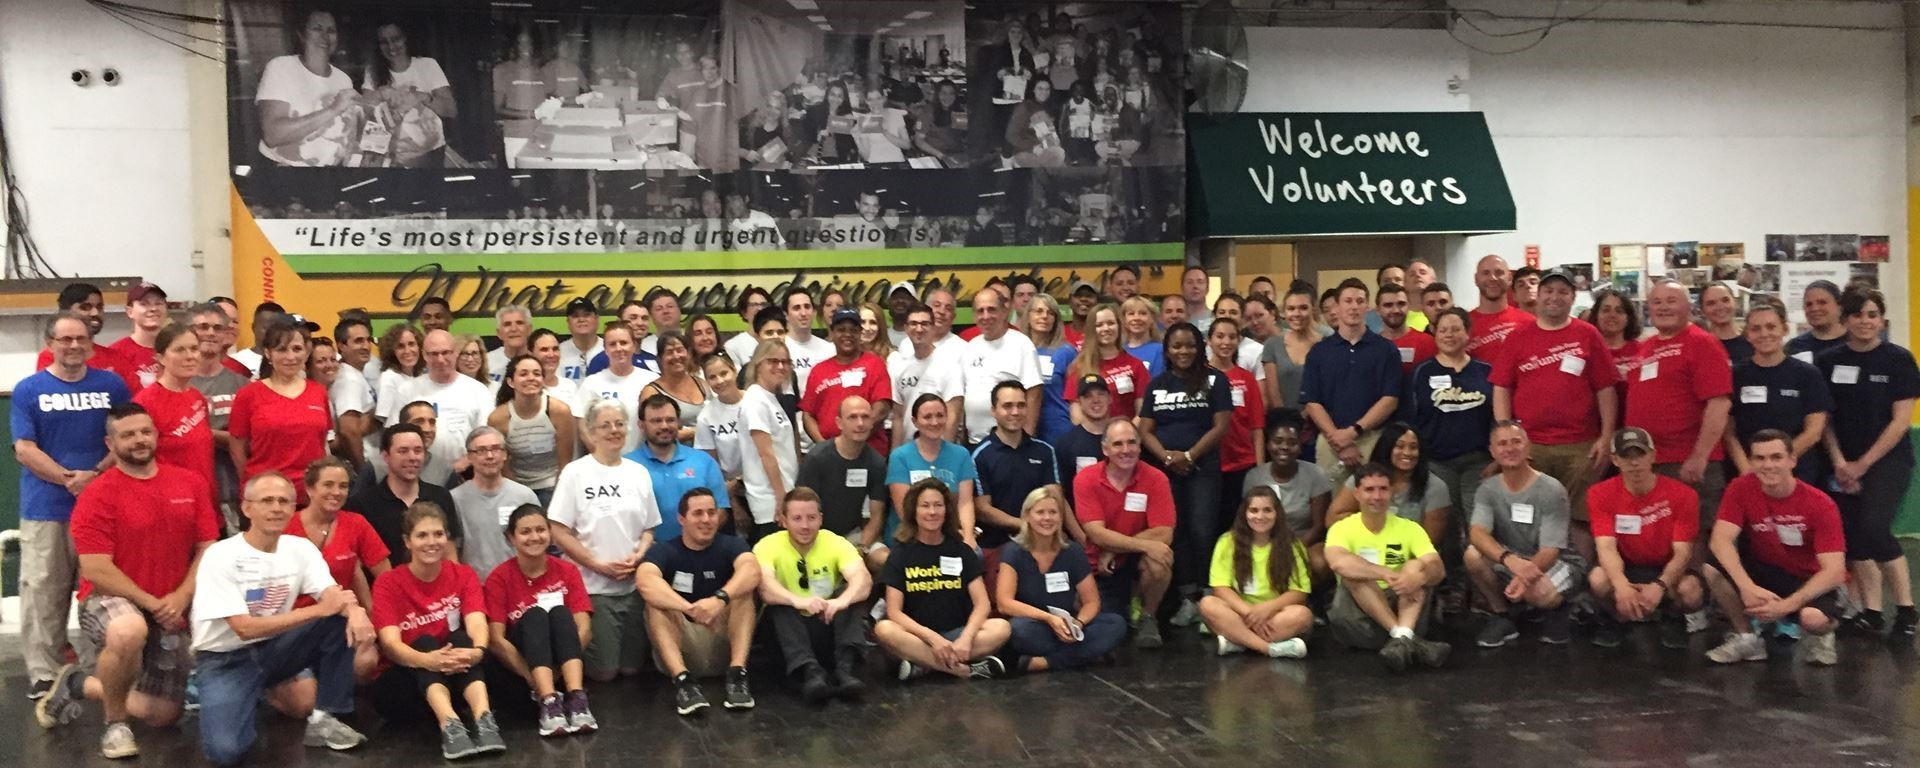 Planned Company volunteers group shot